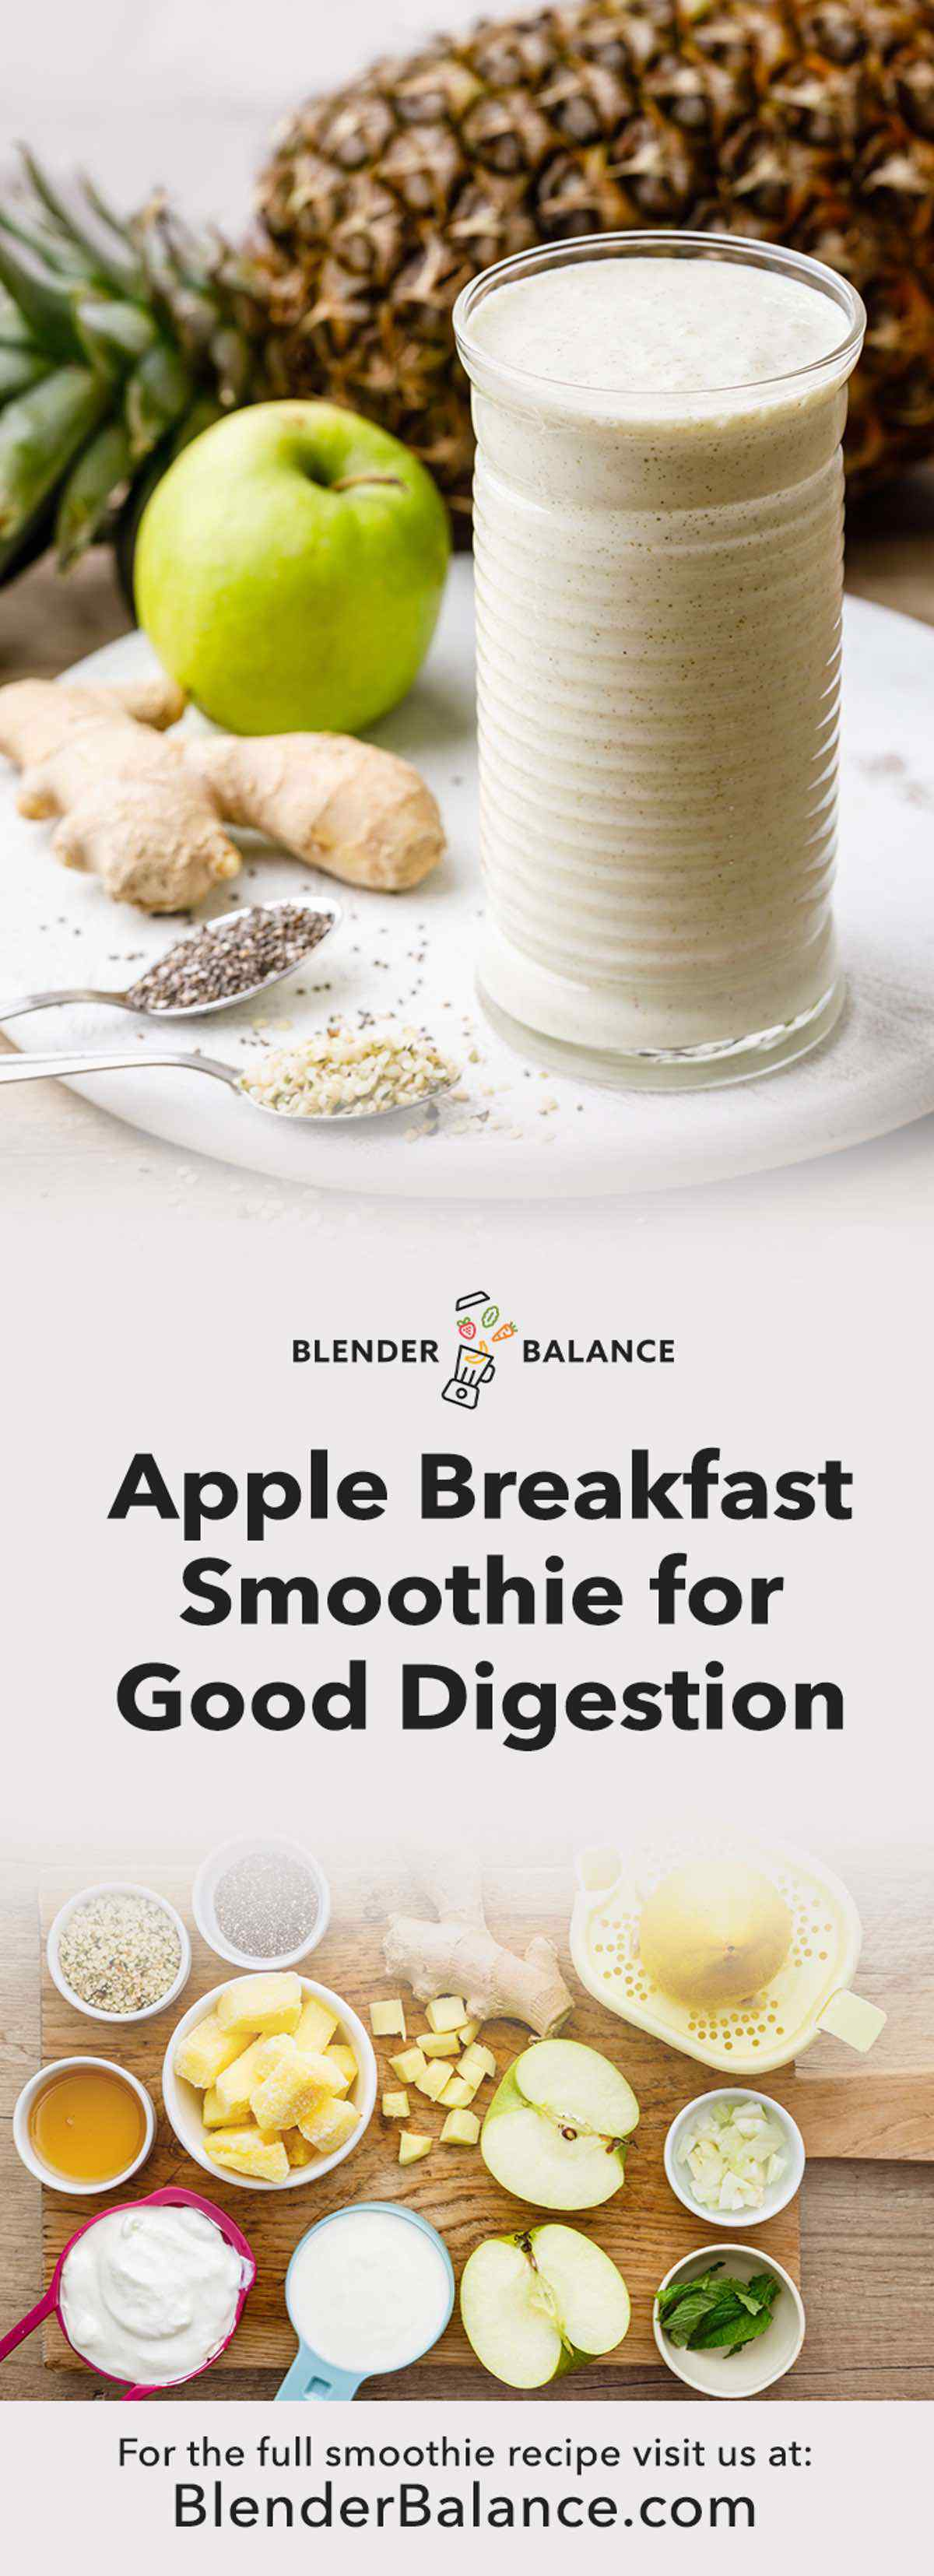 Apple Breakfast Smoothie for Healthy Digestion